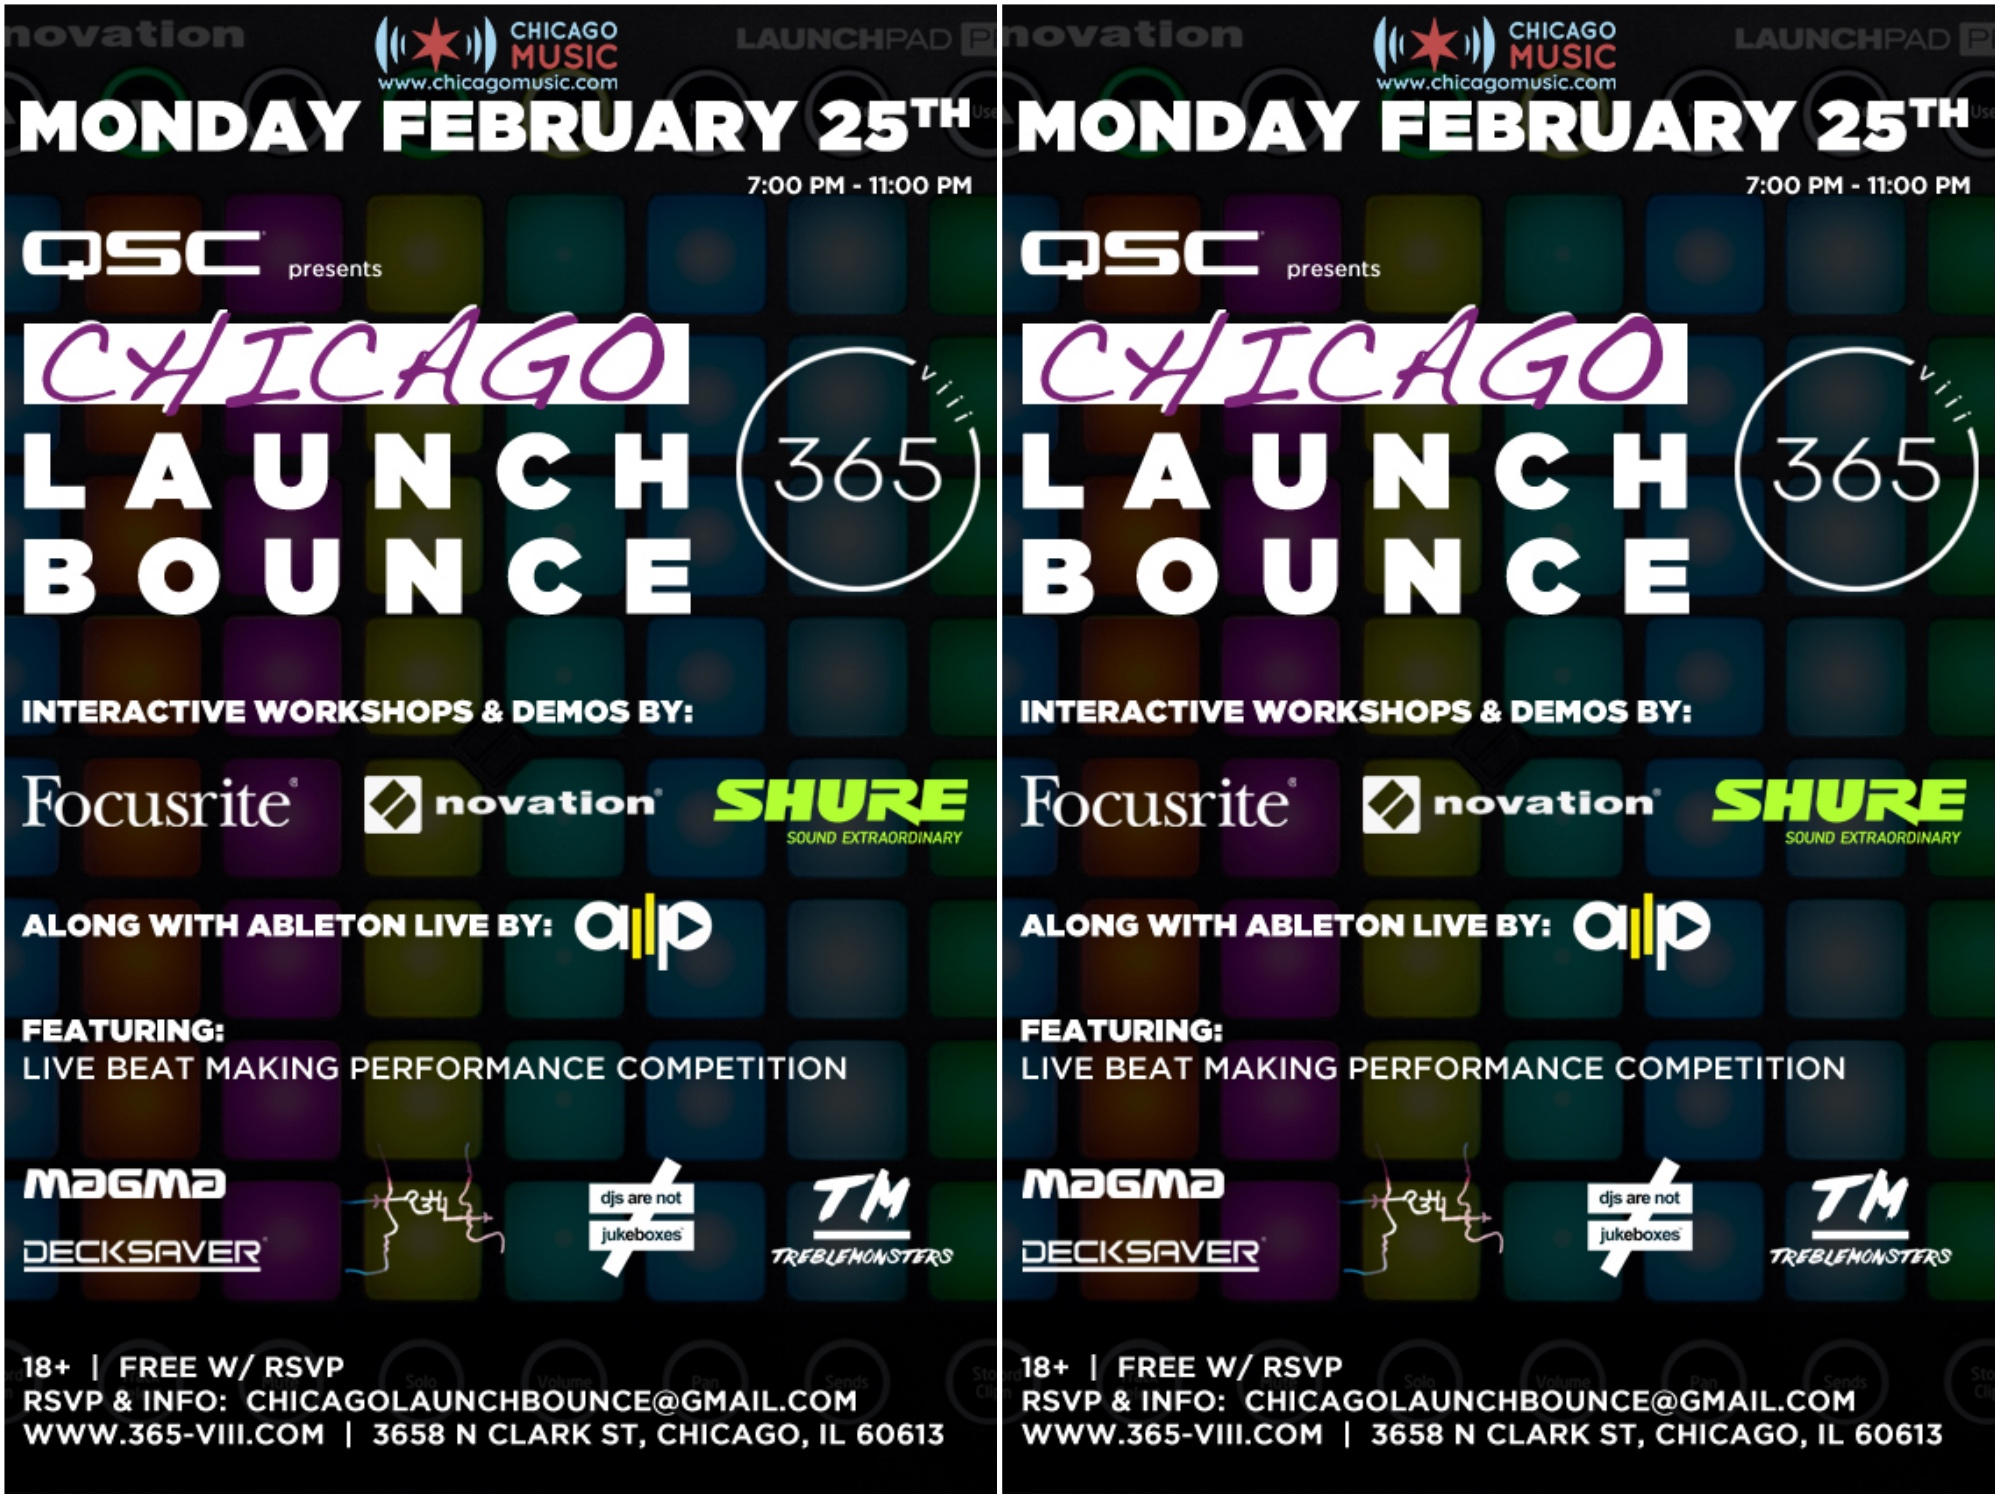 Chicago Launch Bounce